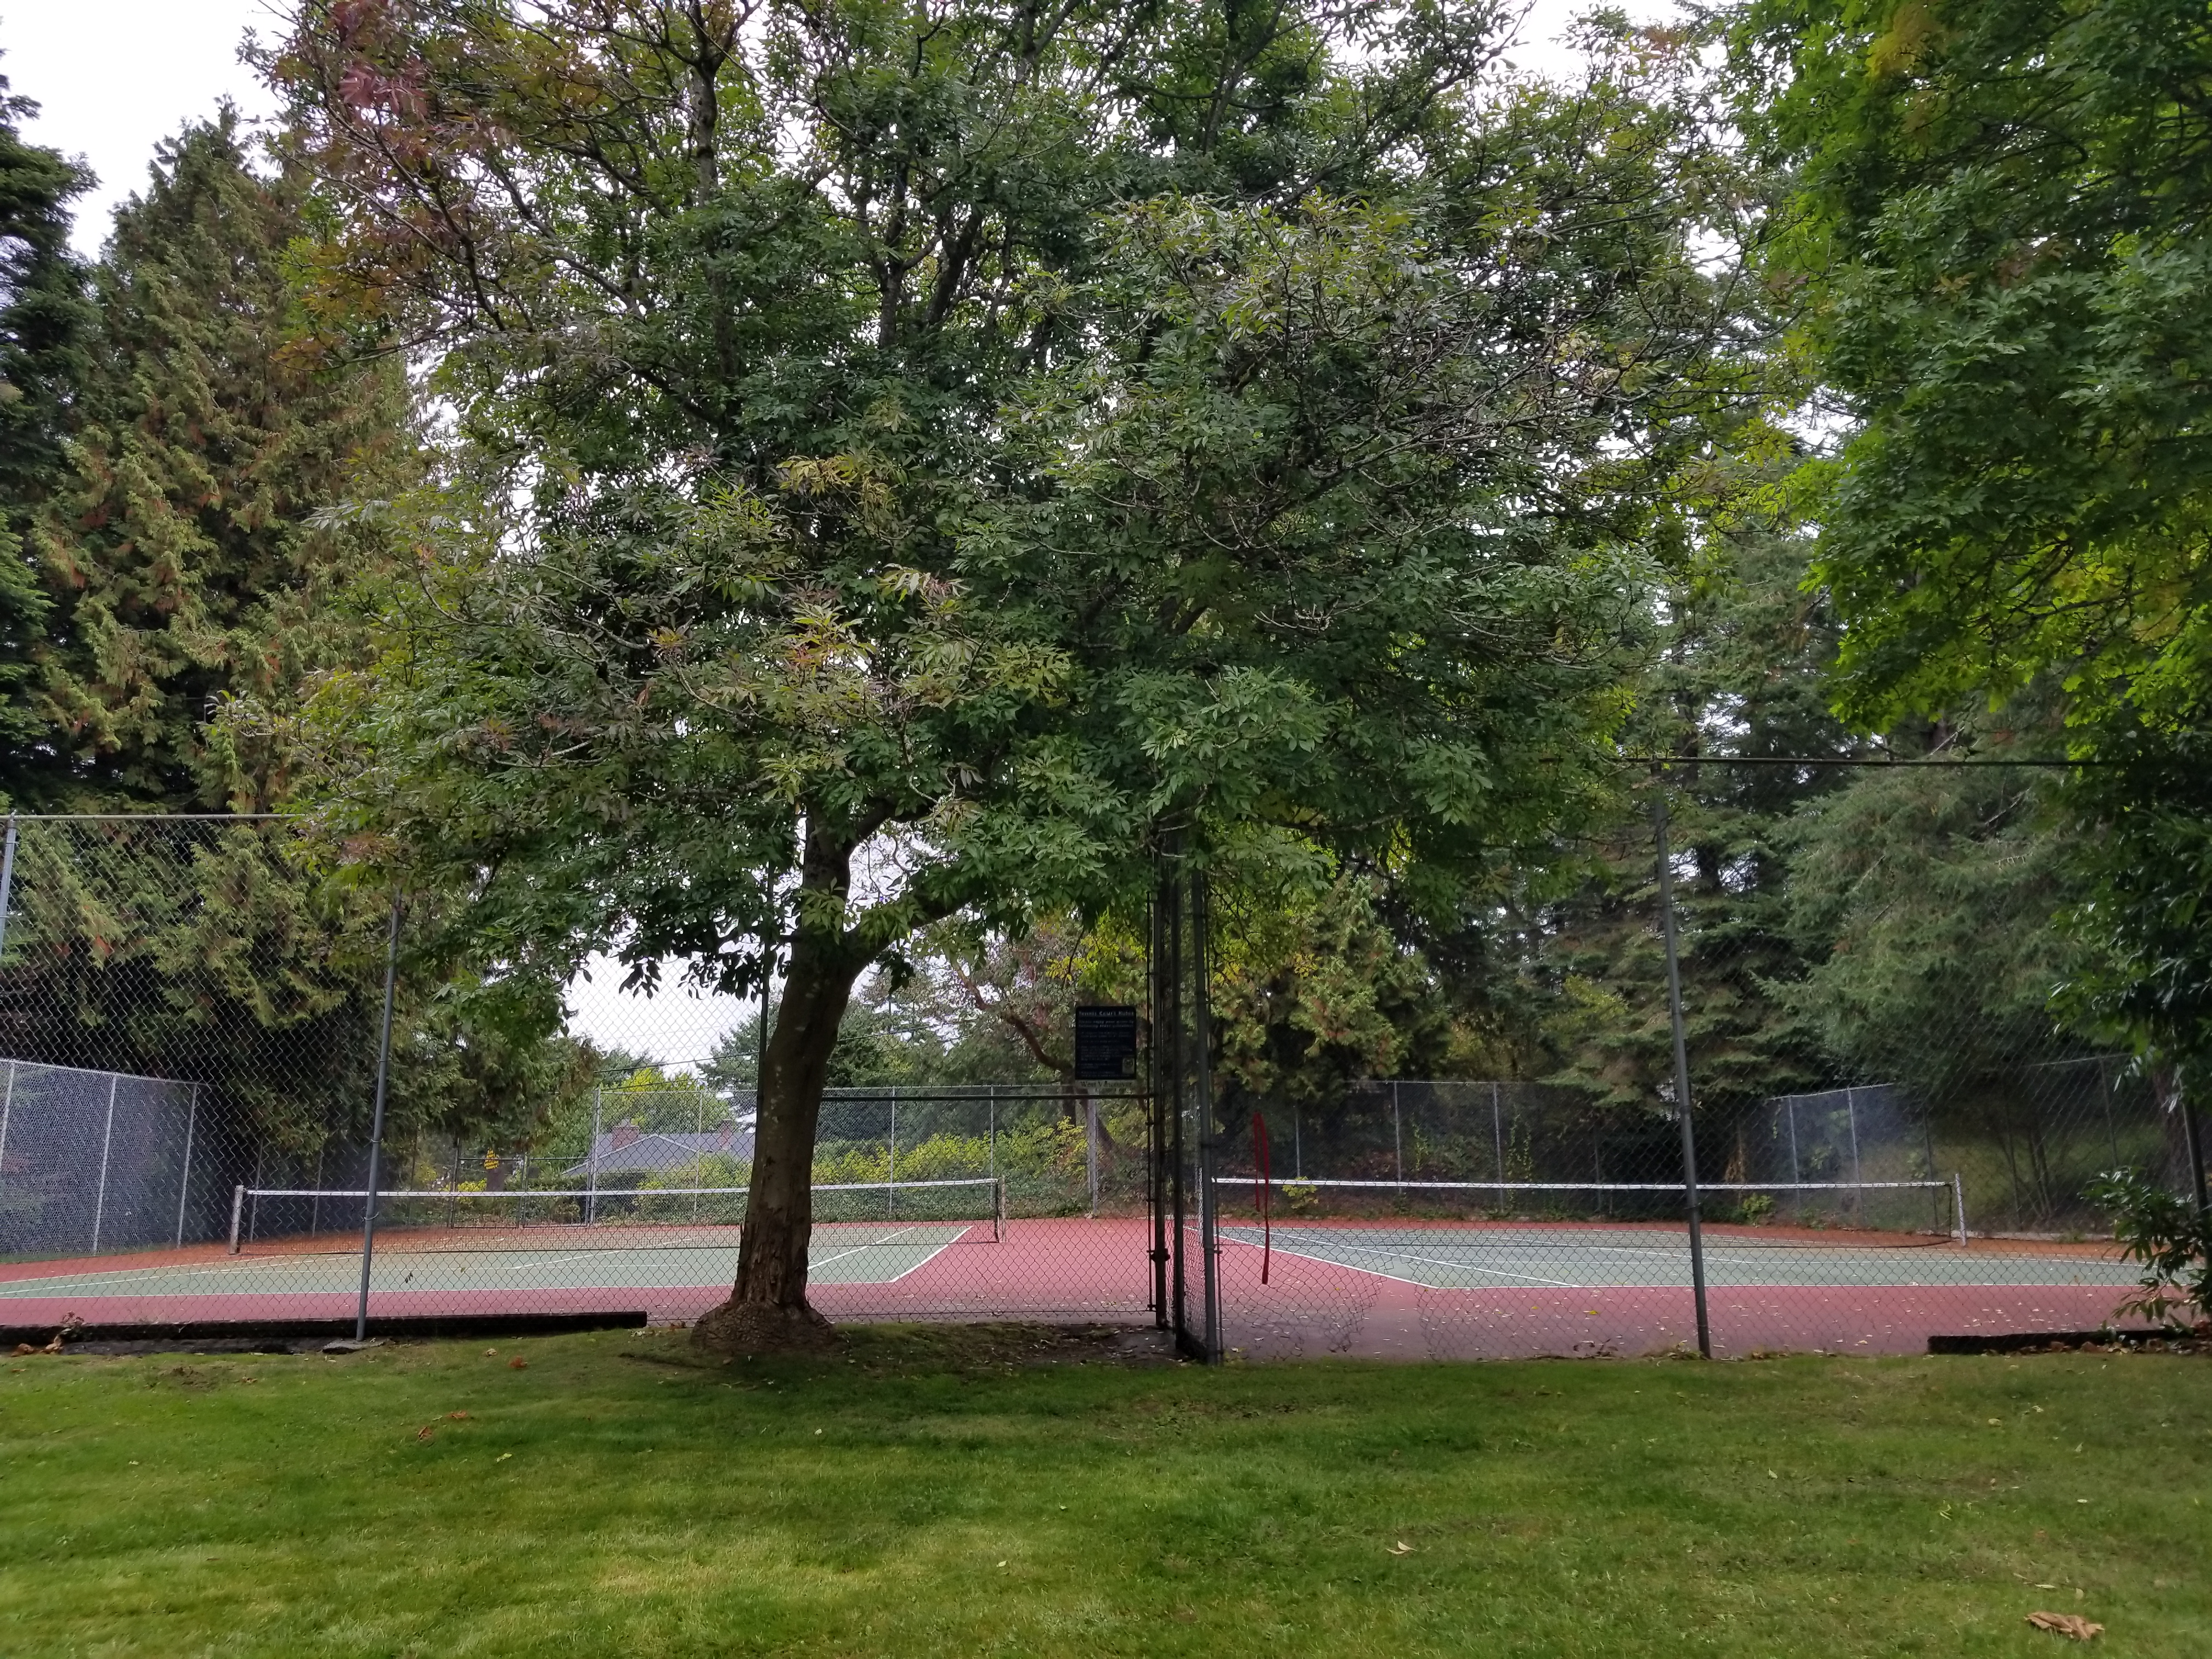 Whytecliff Park, West Vancouver, BC – Tennis Courts